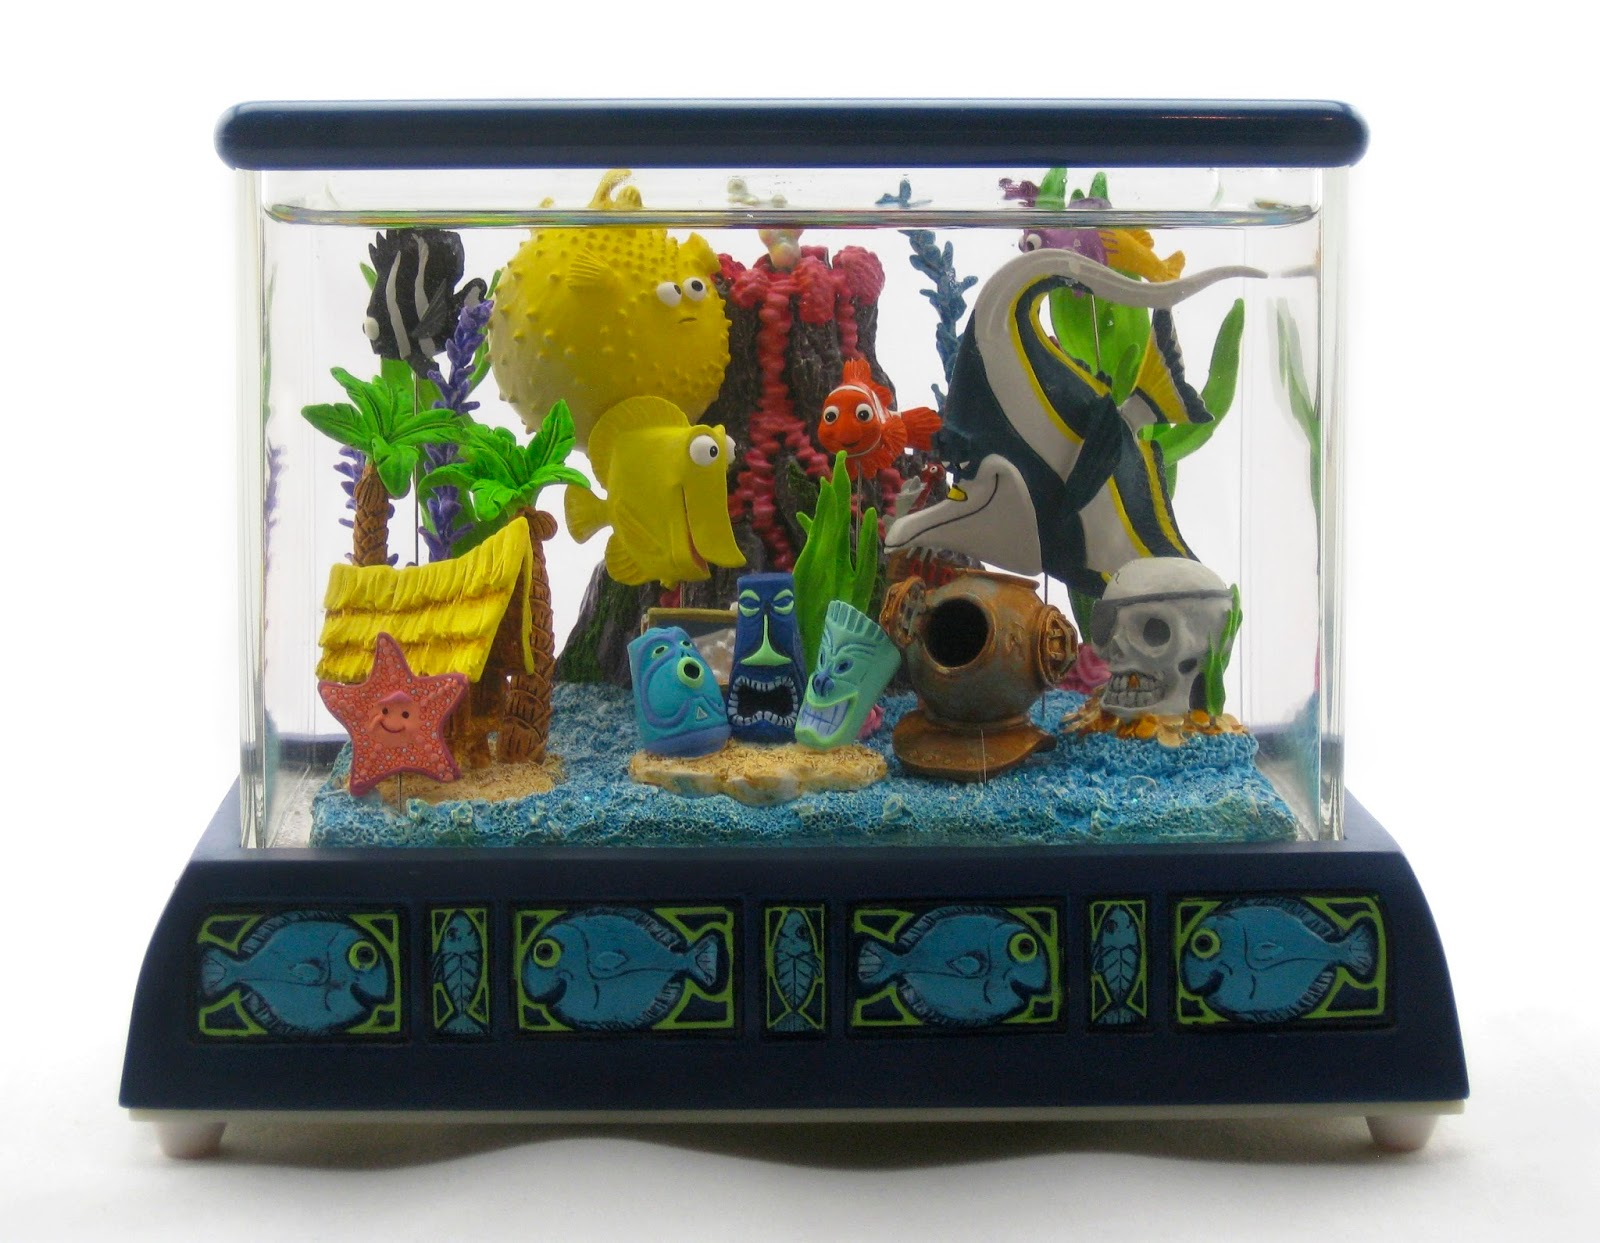 Fish in tank nemo - Finding Nemo Disney Store Fish Tank Gang Snowglobe